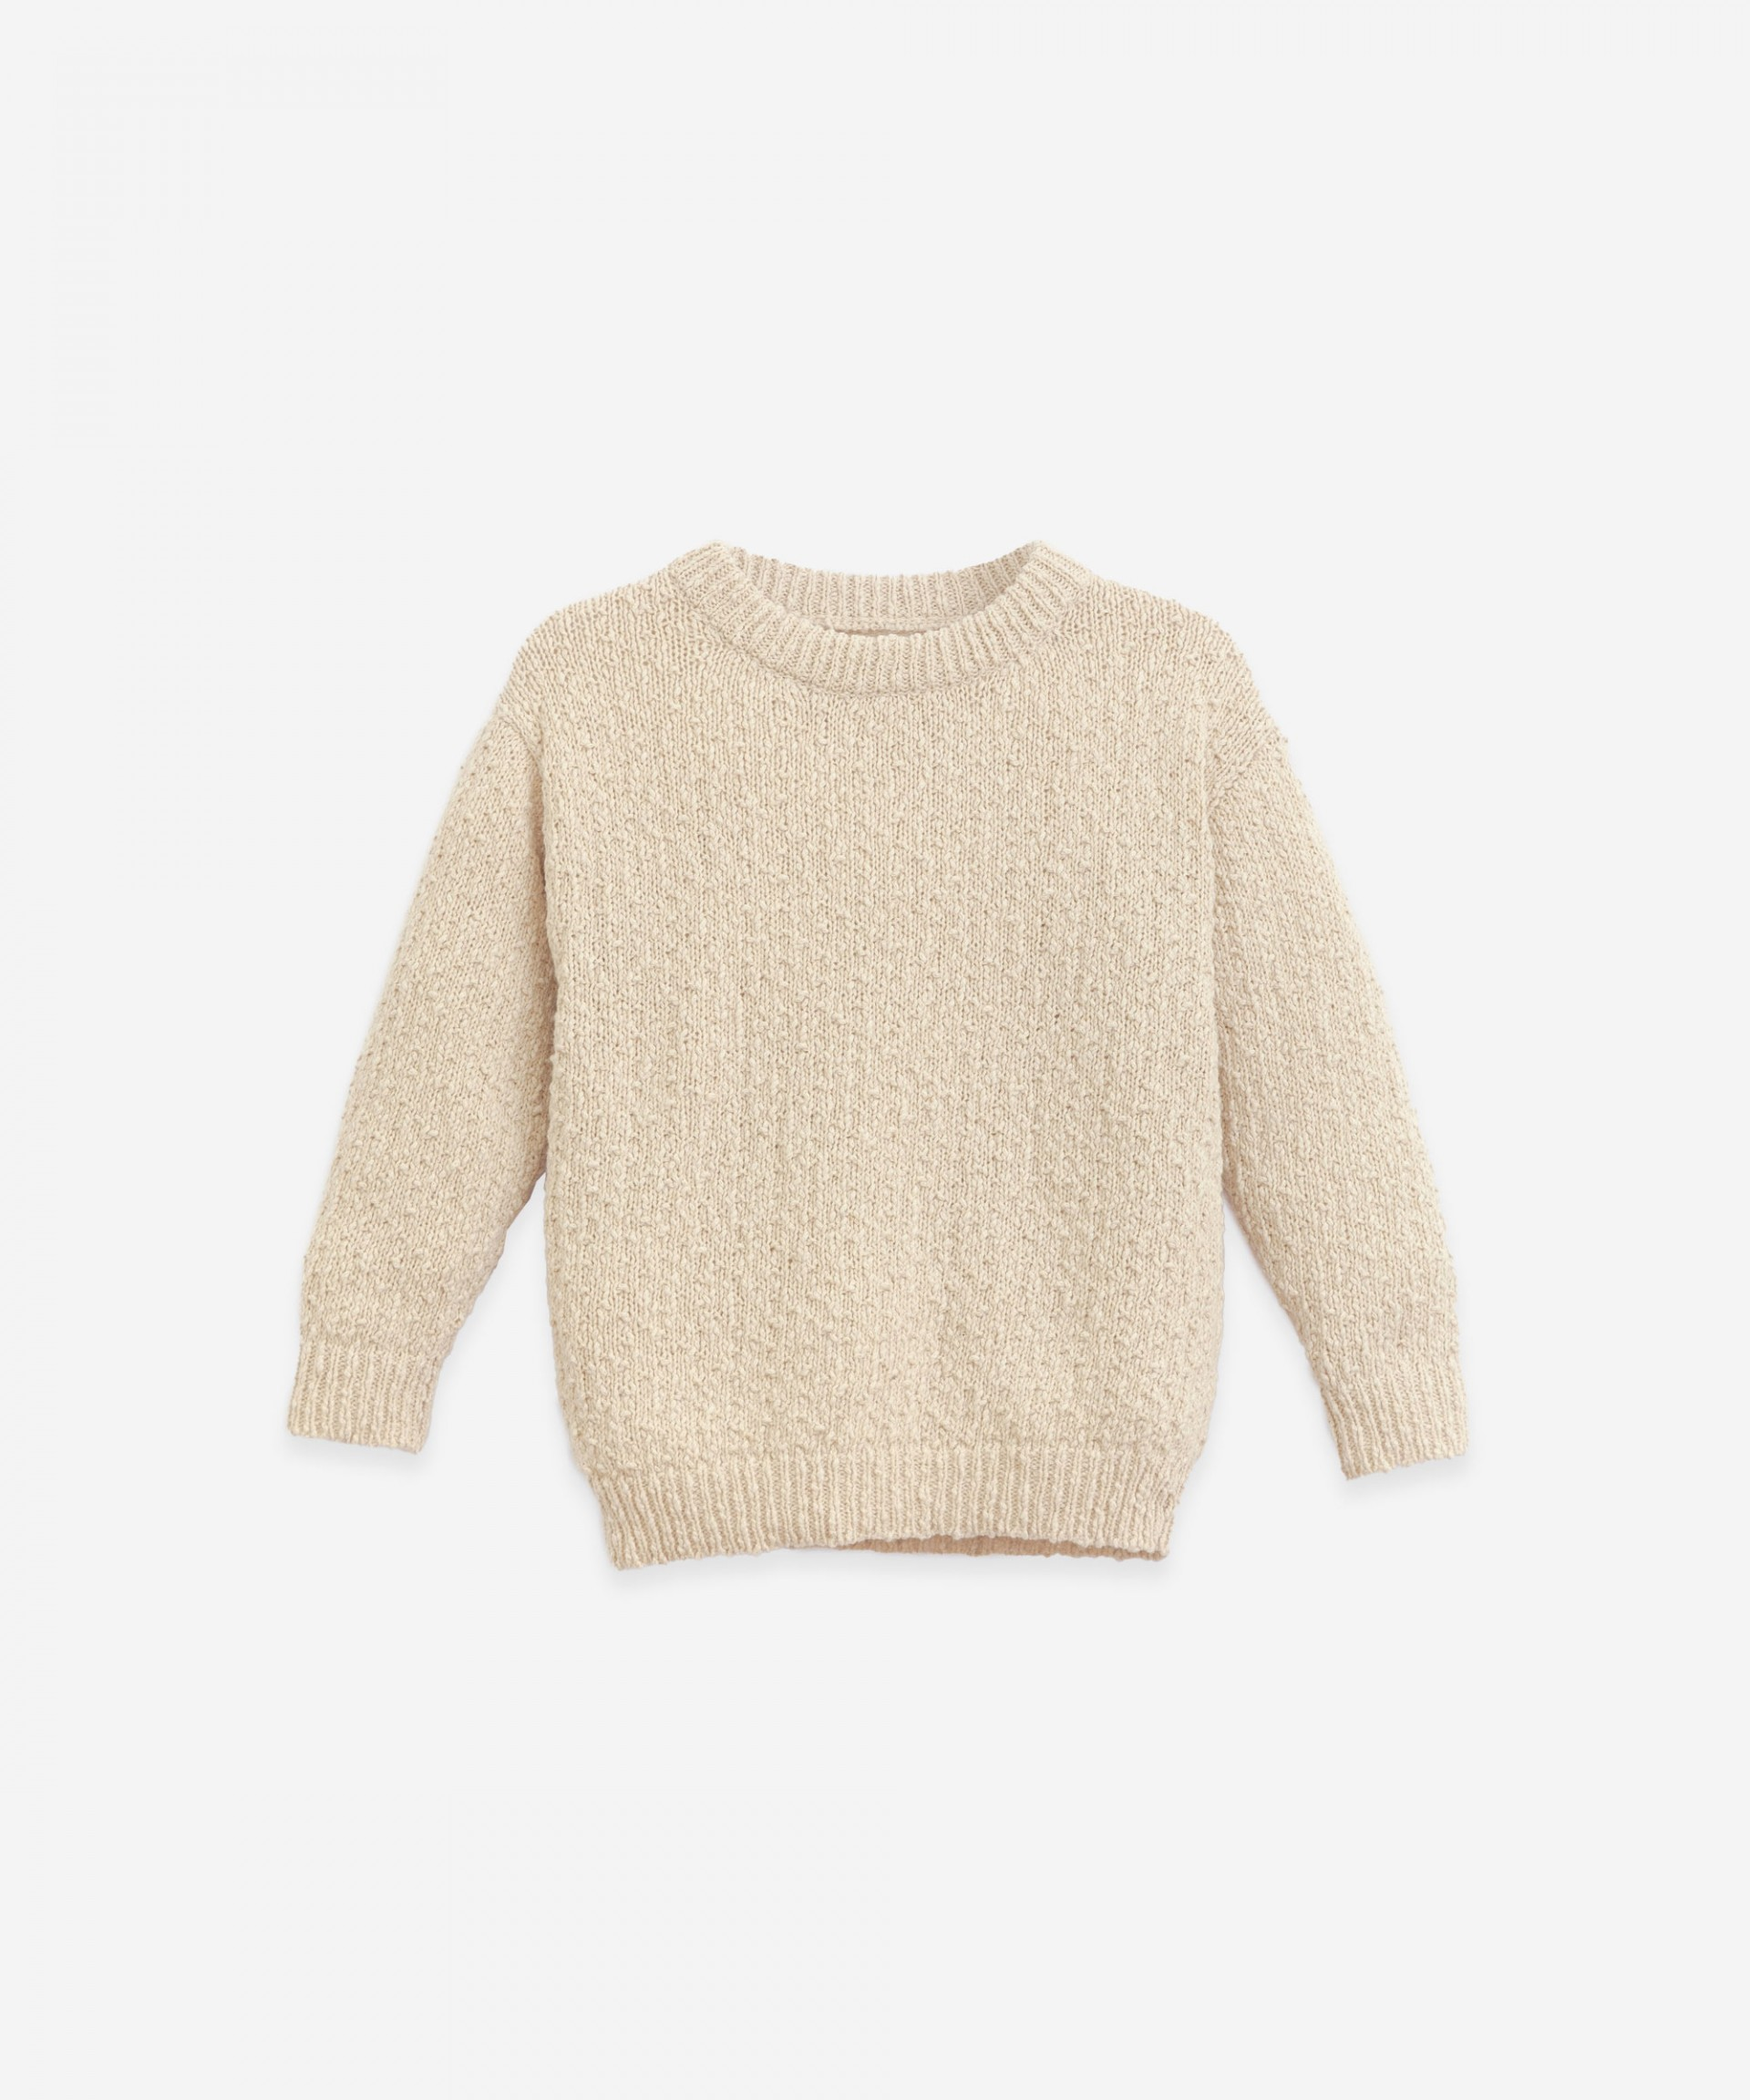 Cotton and linen sweater | Botany